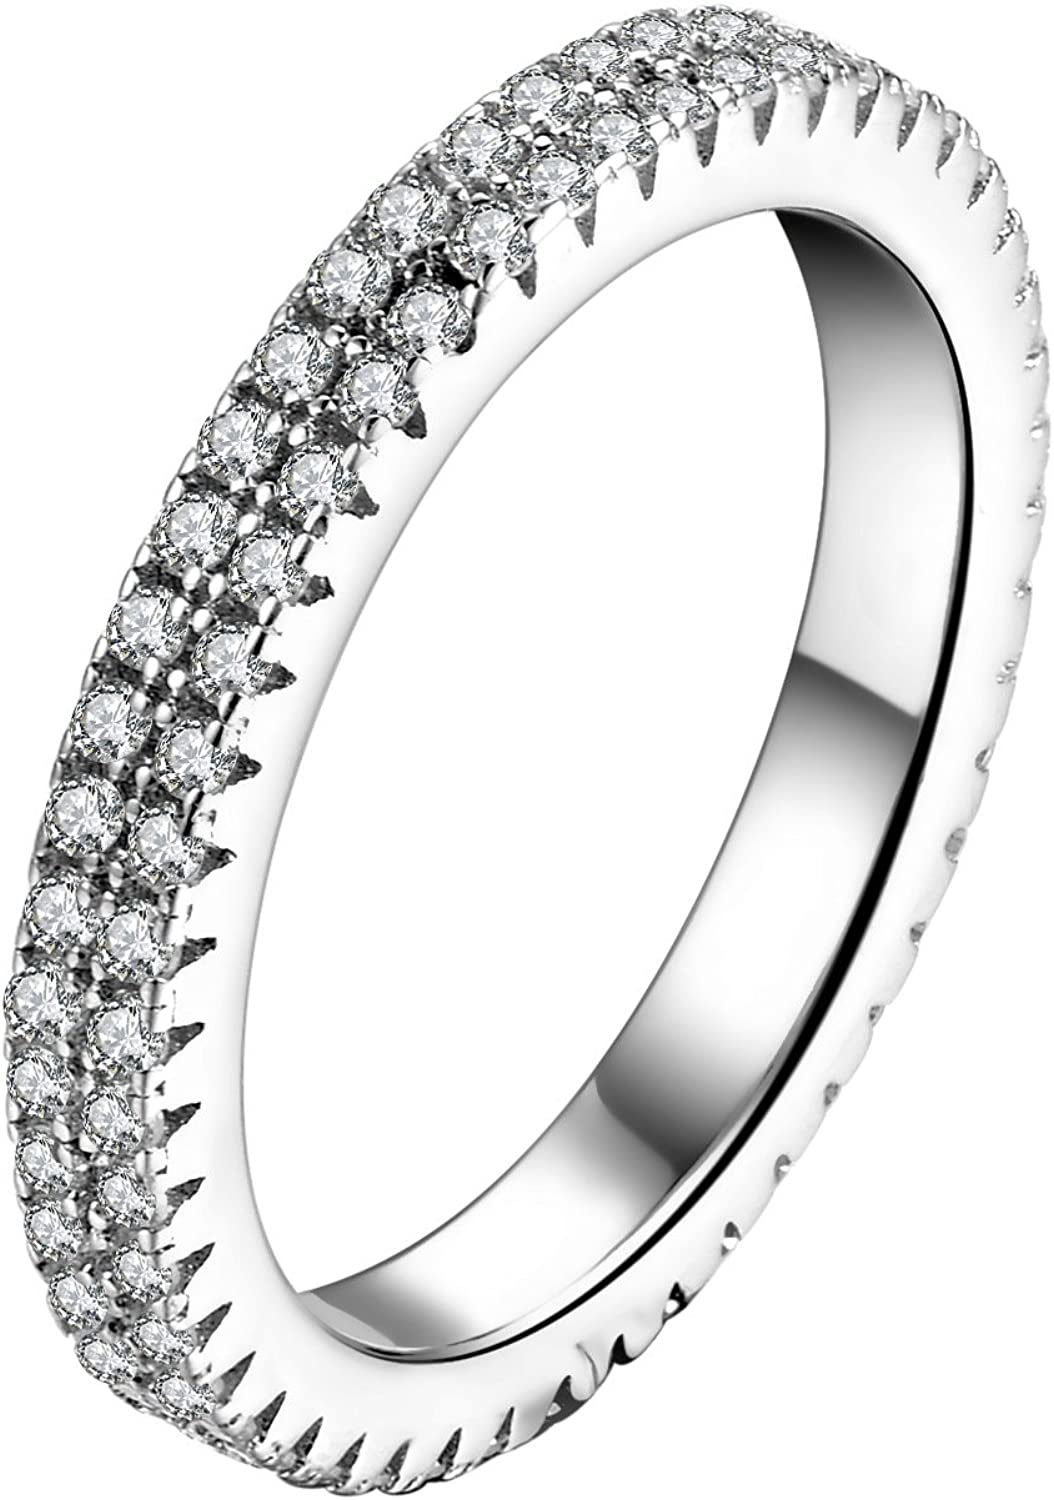 SILBERTALE 925 Sterling Silver Paved Cubic Zirconia Stackable Ring CZ Eternity Wedding Band Women Size 5-8